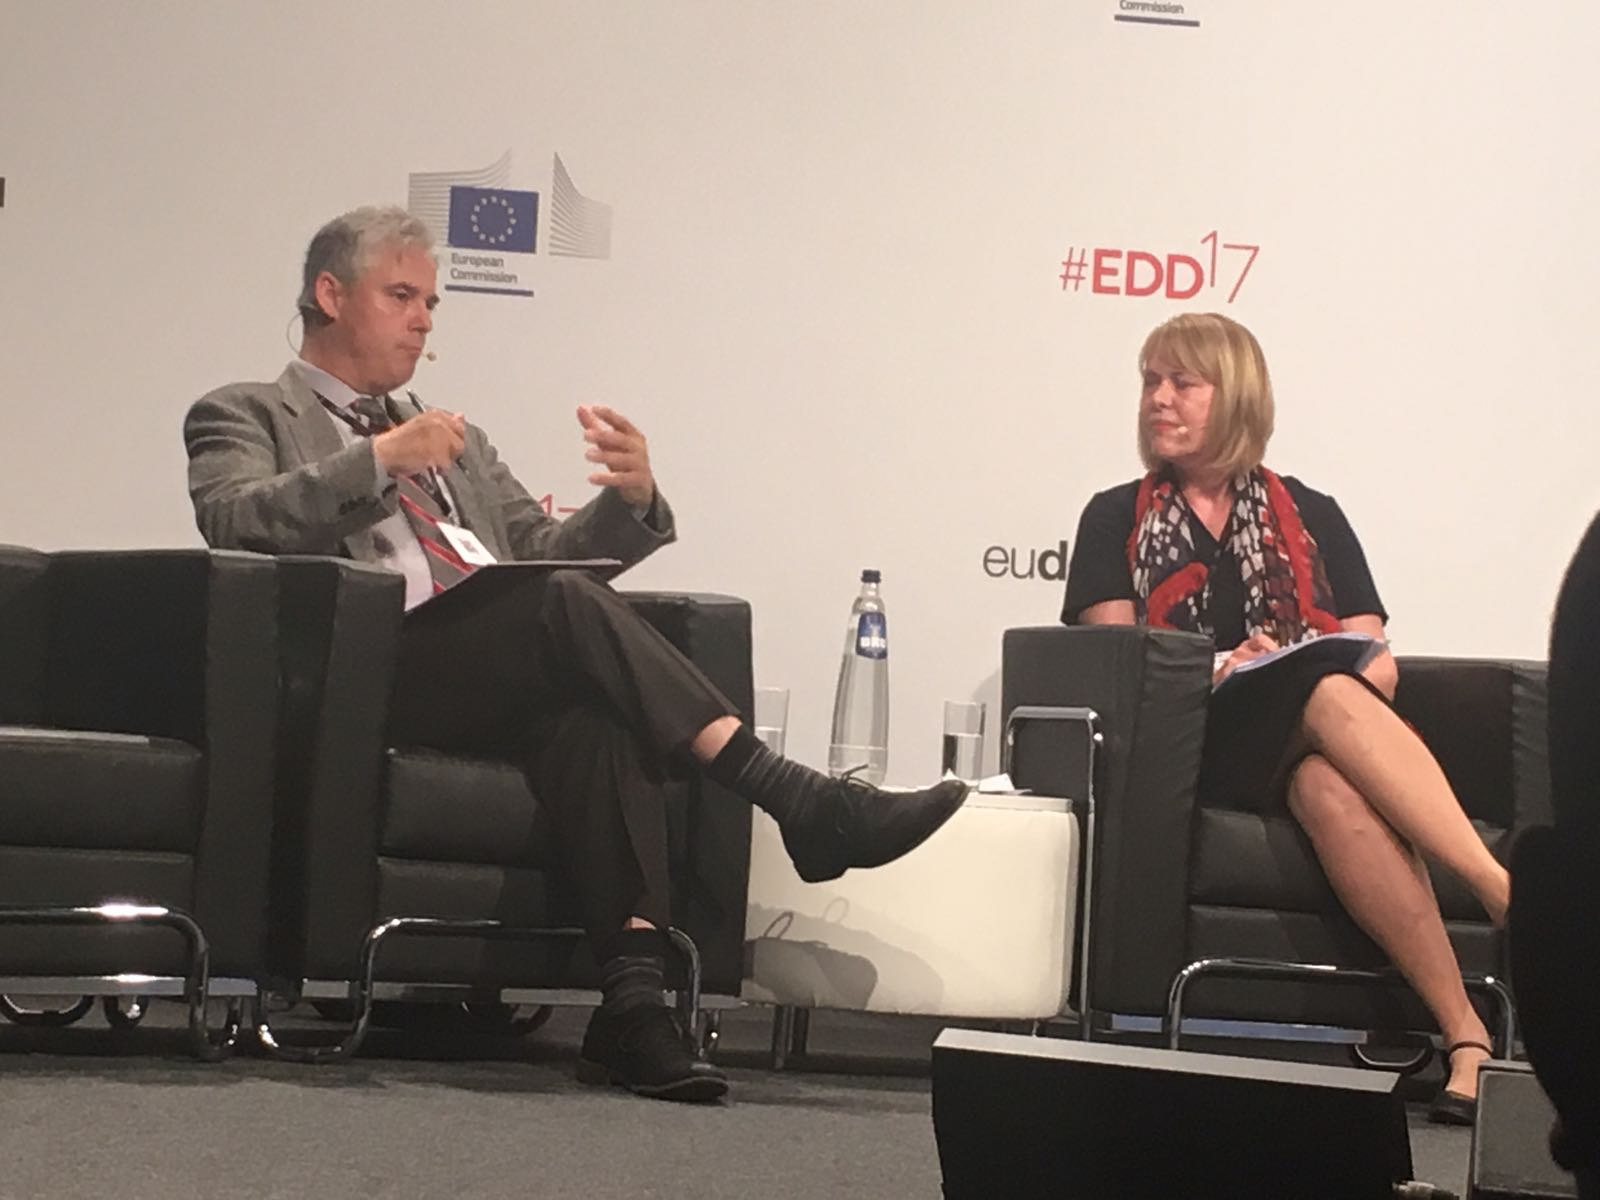 """""""We need to help young people make choices themselves and be the drivers of their own development"""" says Mattias Lundberg #EDD17 https://t.co/KCl0rYTc4q"""